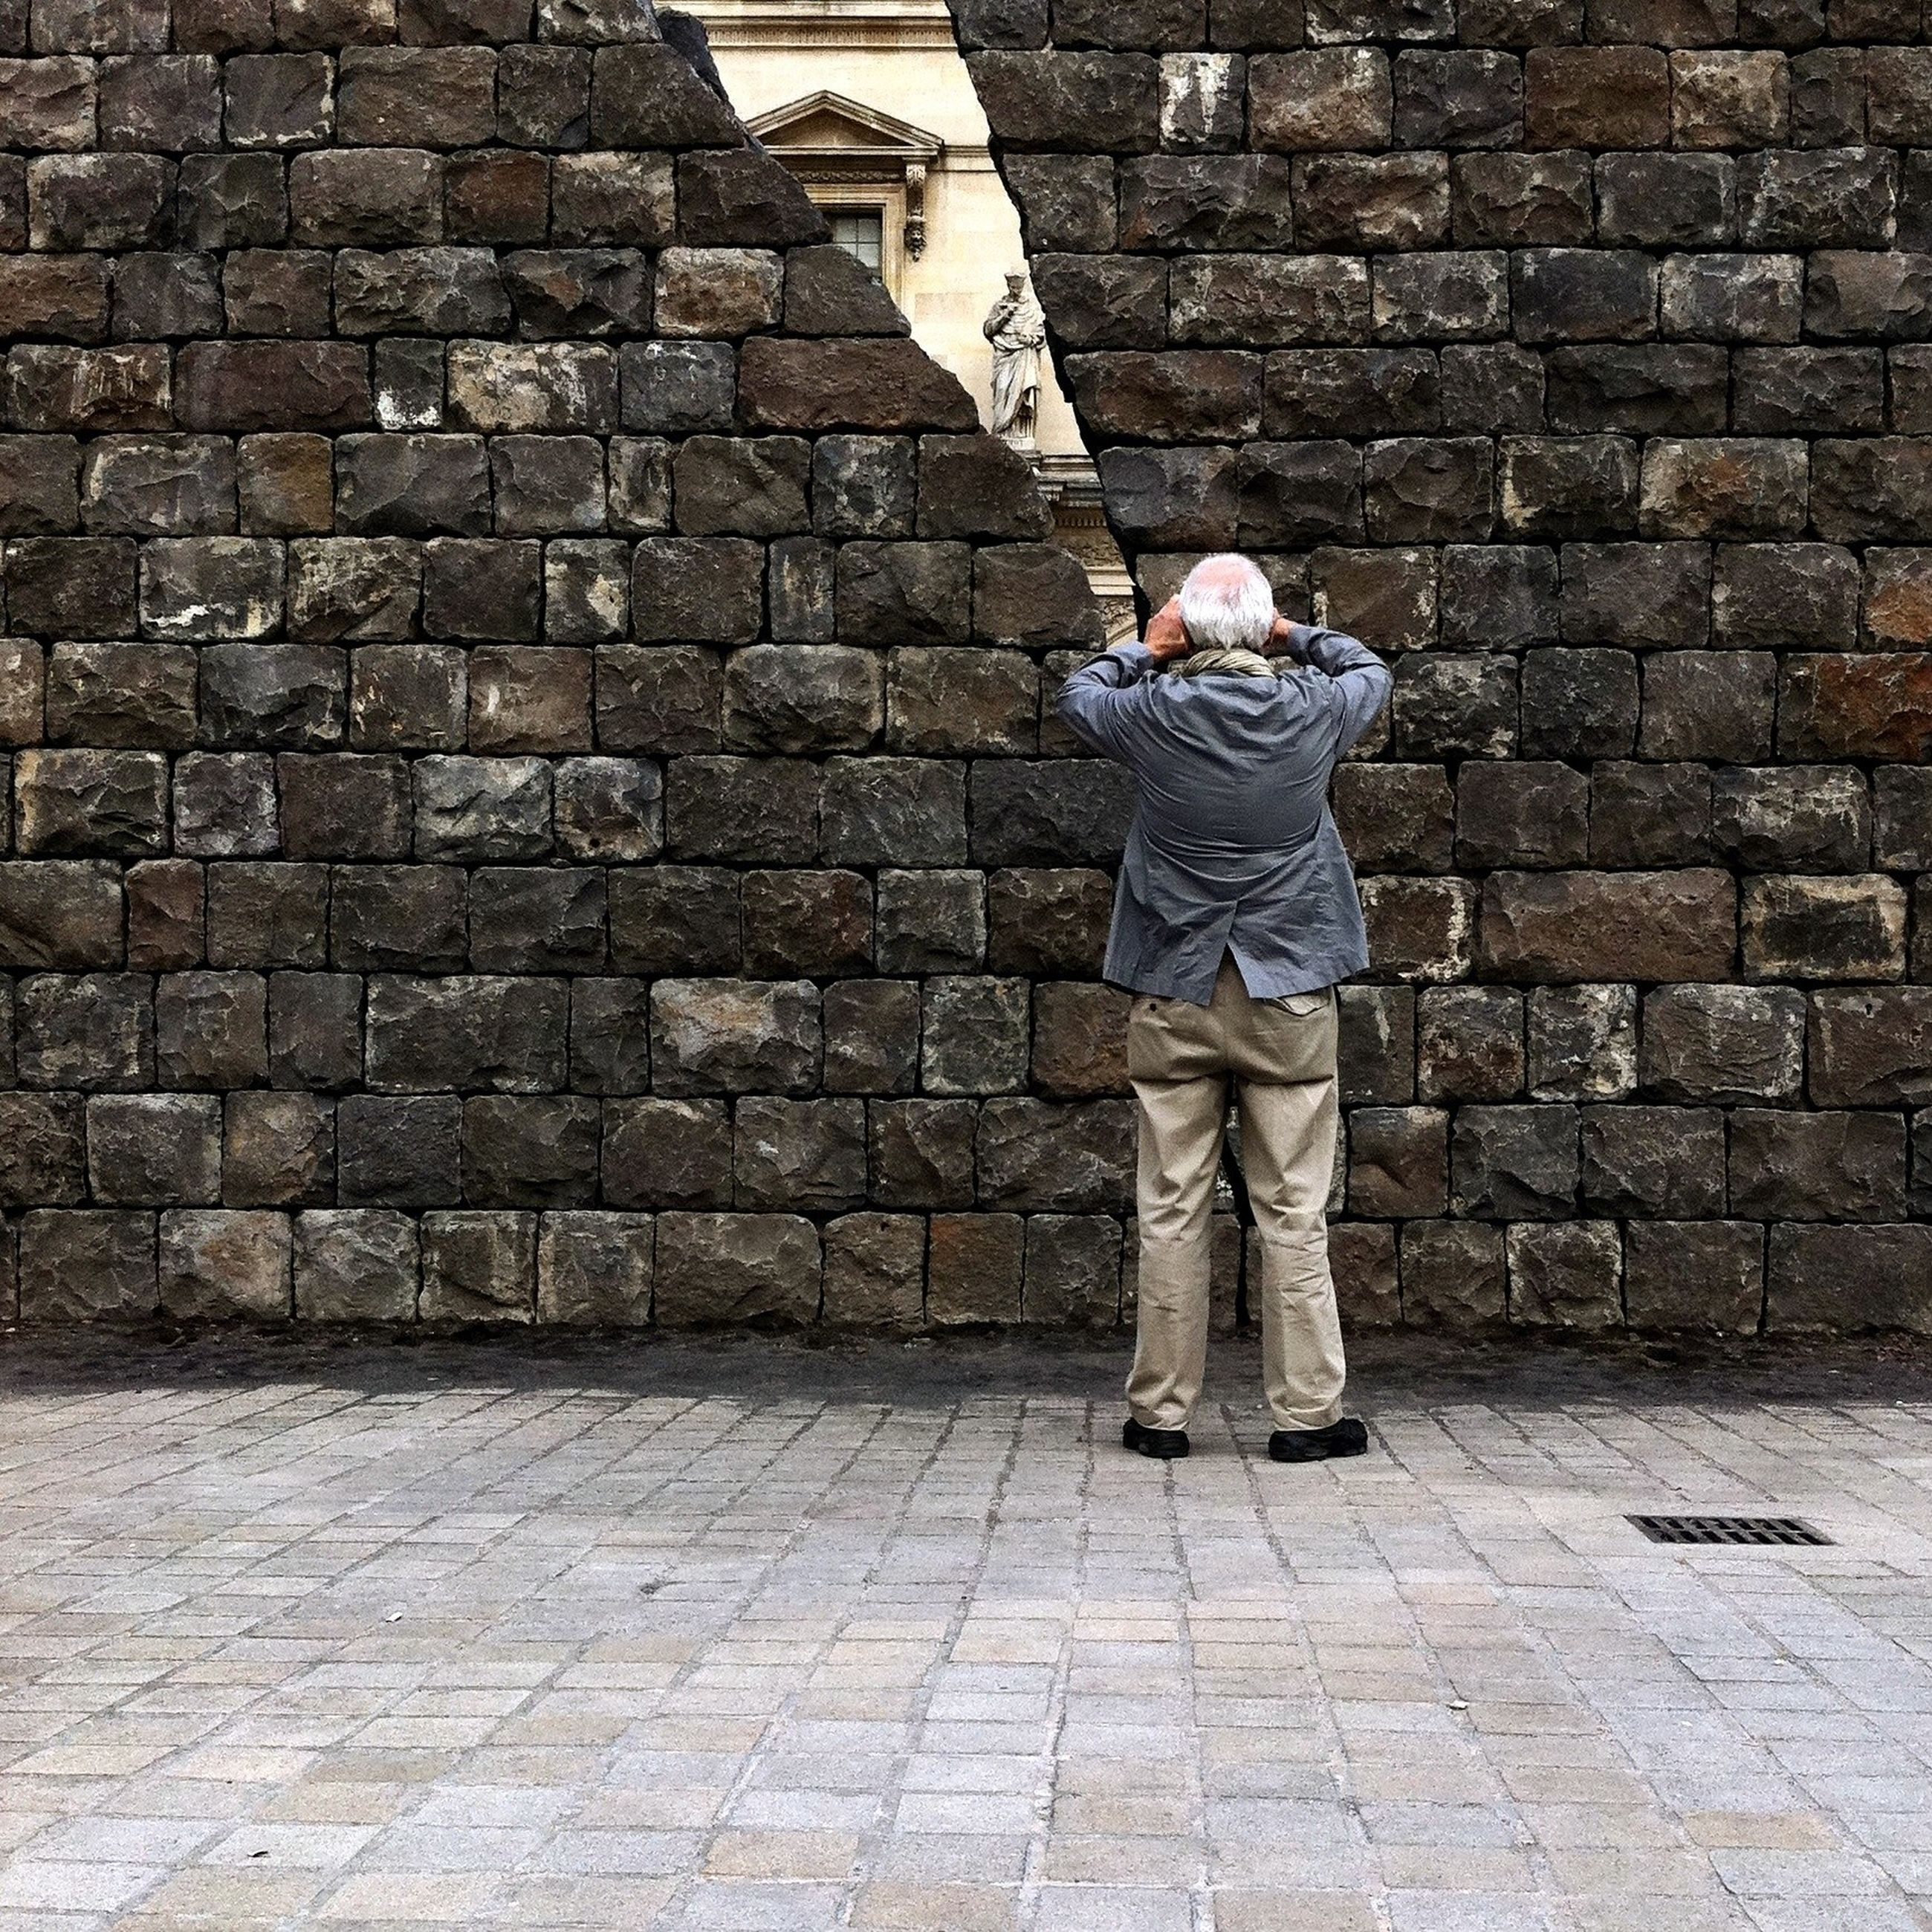 full length, lifestyles, brick wall, casual clothing, cobblestone, rear view, standing, wall - building feature, leisure activity, built structure, architecture, stone wall, walking, building exterior, men, sidewalk, paving stone, day